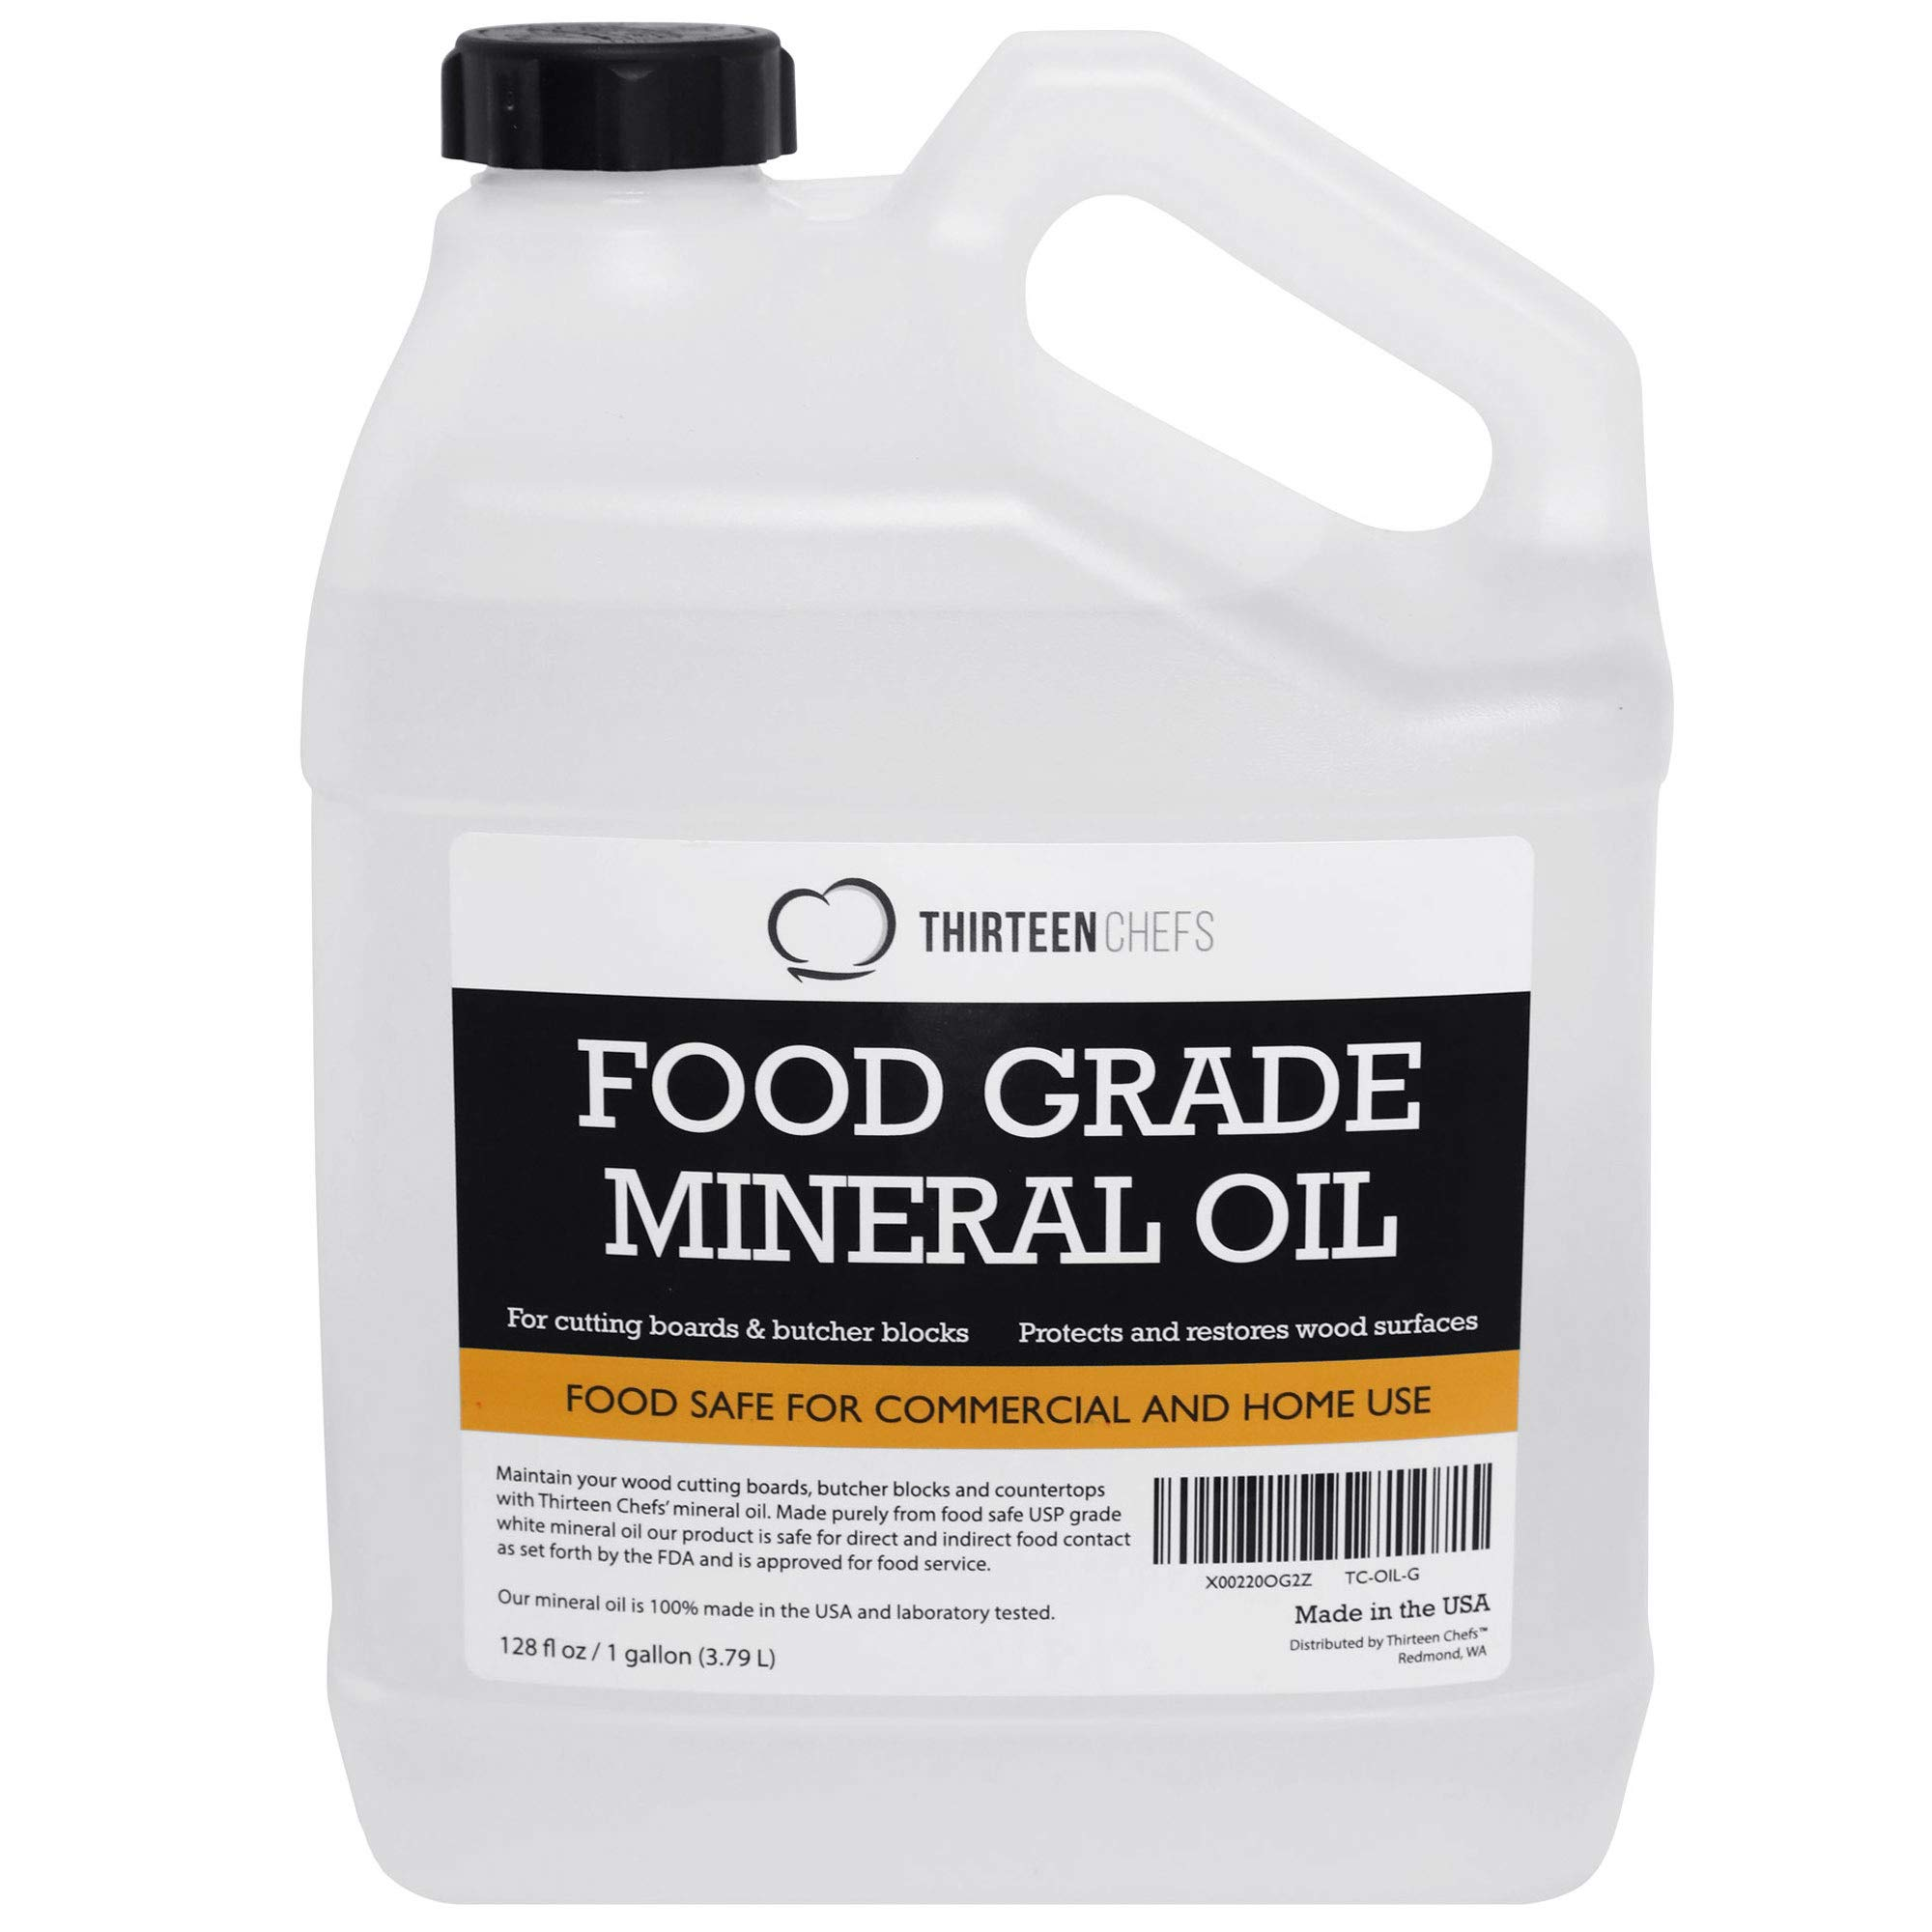 Food Grade Mineral Oil for Cutting Boards, Countertops and Butcher Blocks, Food Safe and Made in The US 128oz, 1 Gallon by Thirteen Chefs